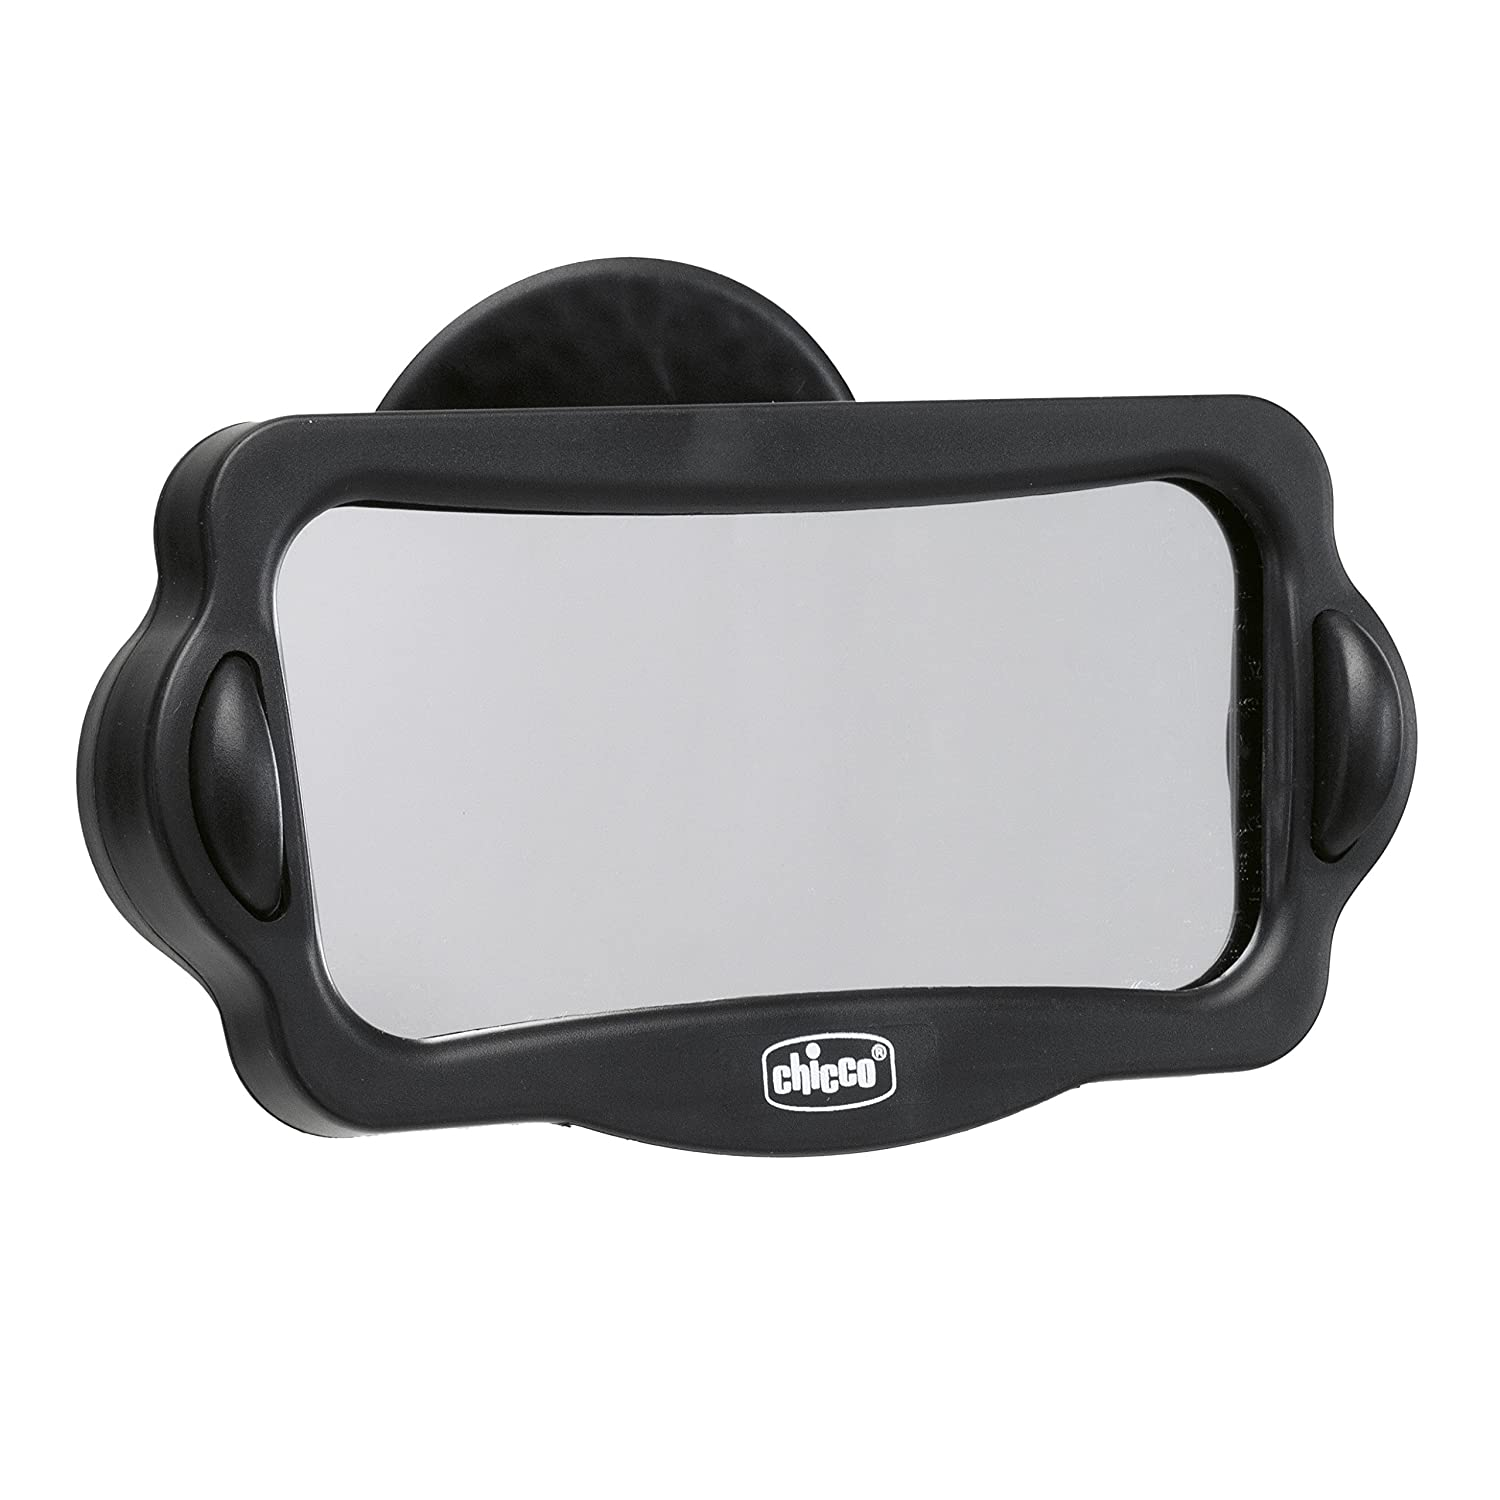 Chicco Rear View Mirror 06079520000000